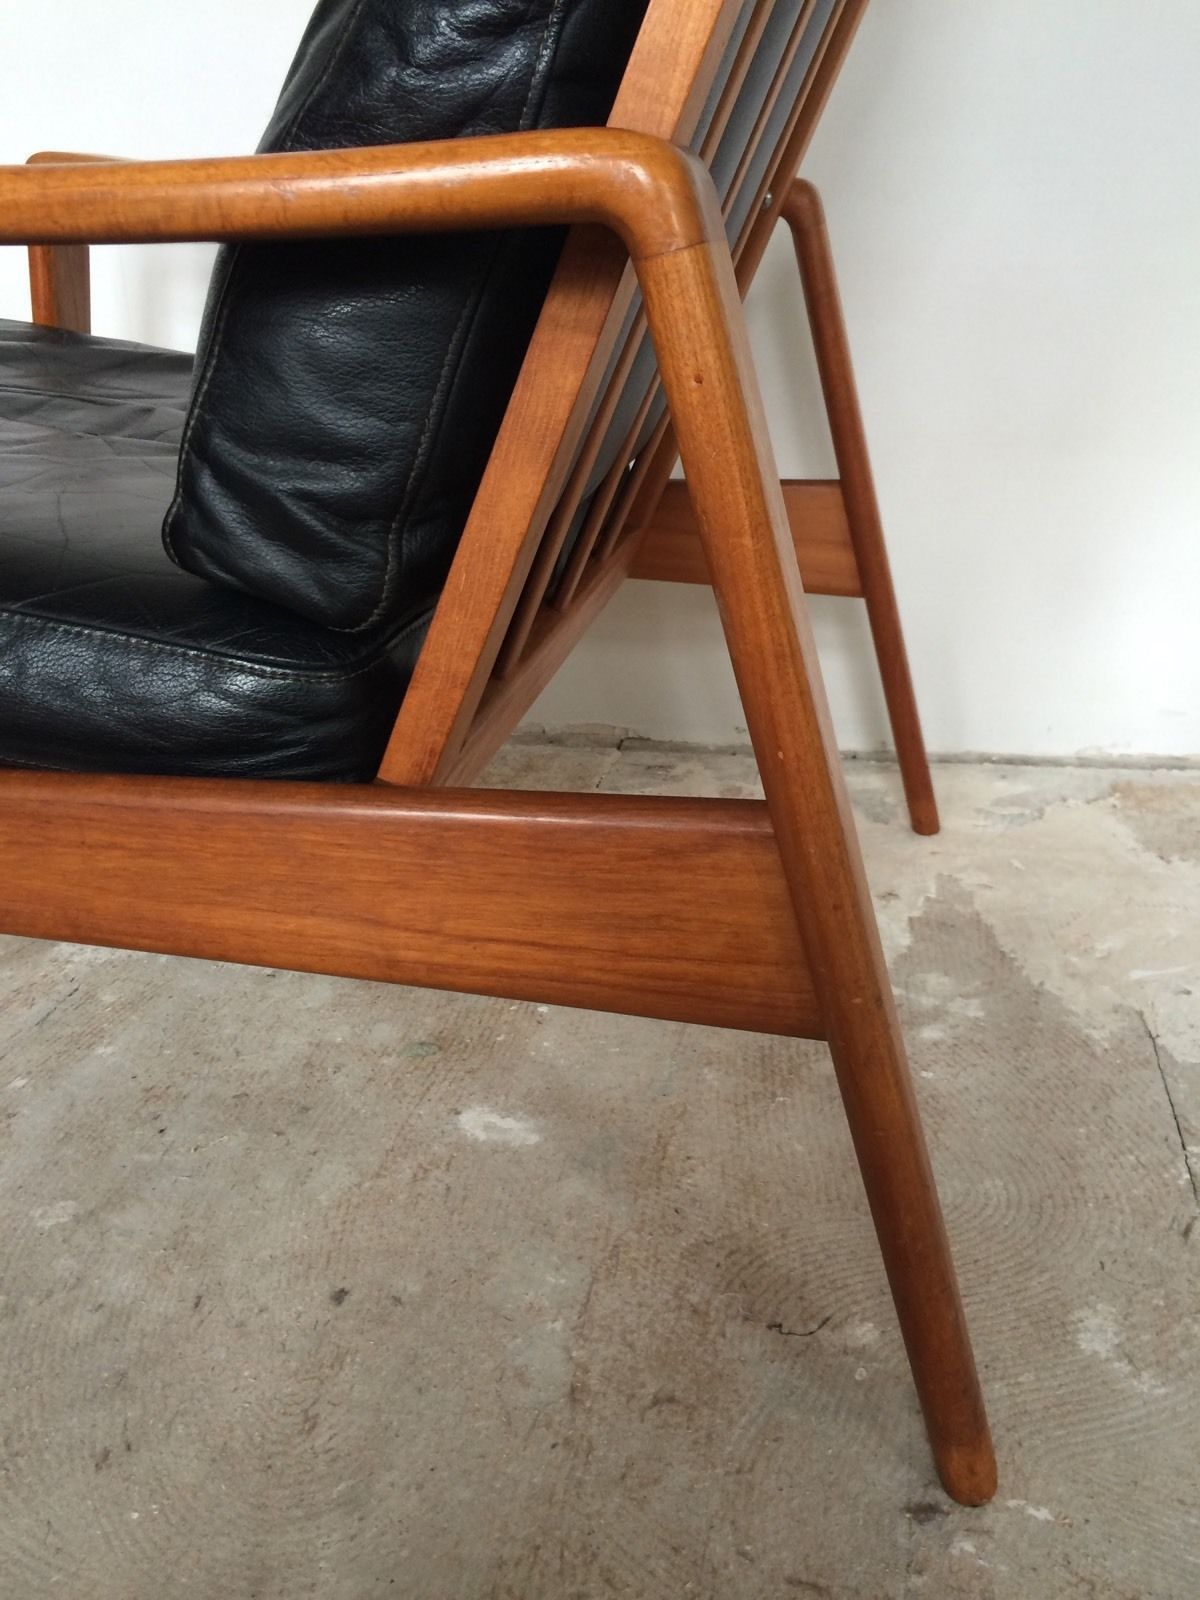 Danish Sessel Arne Wahl Iversen Komfort Lounge Chair Teak 60s Danish Design